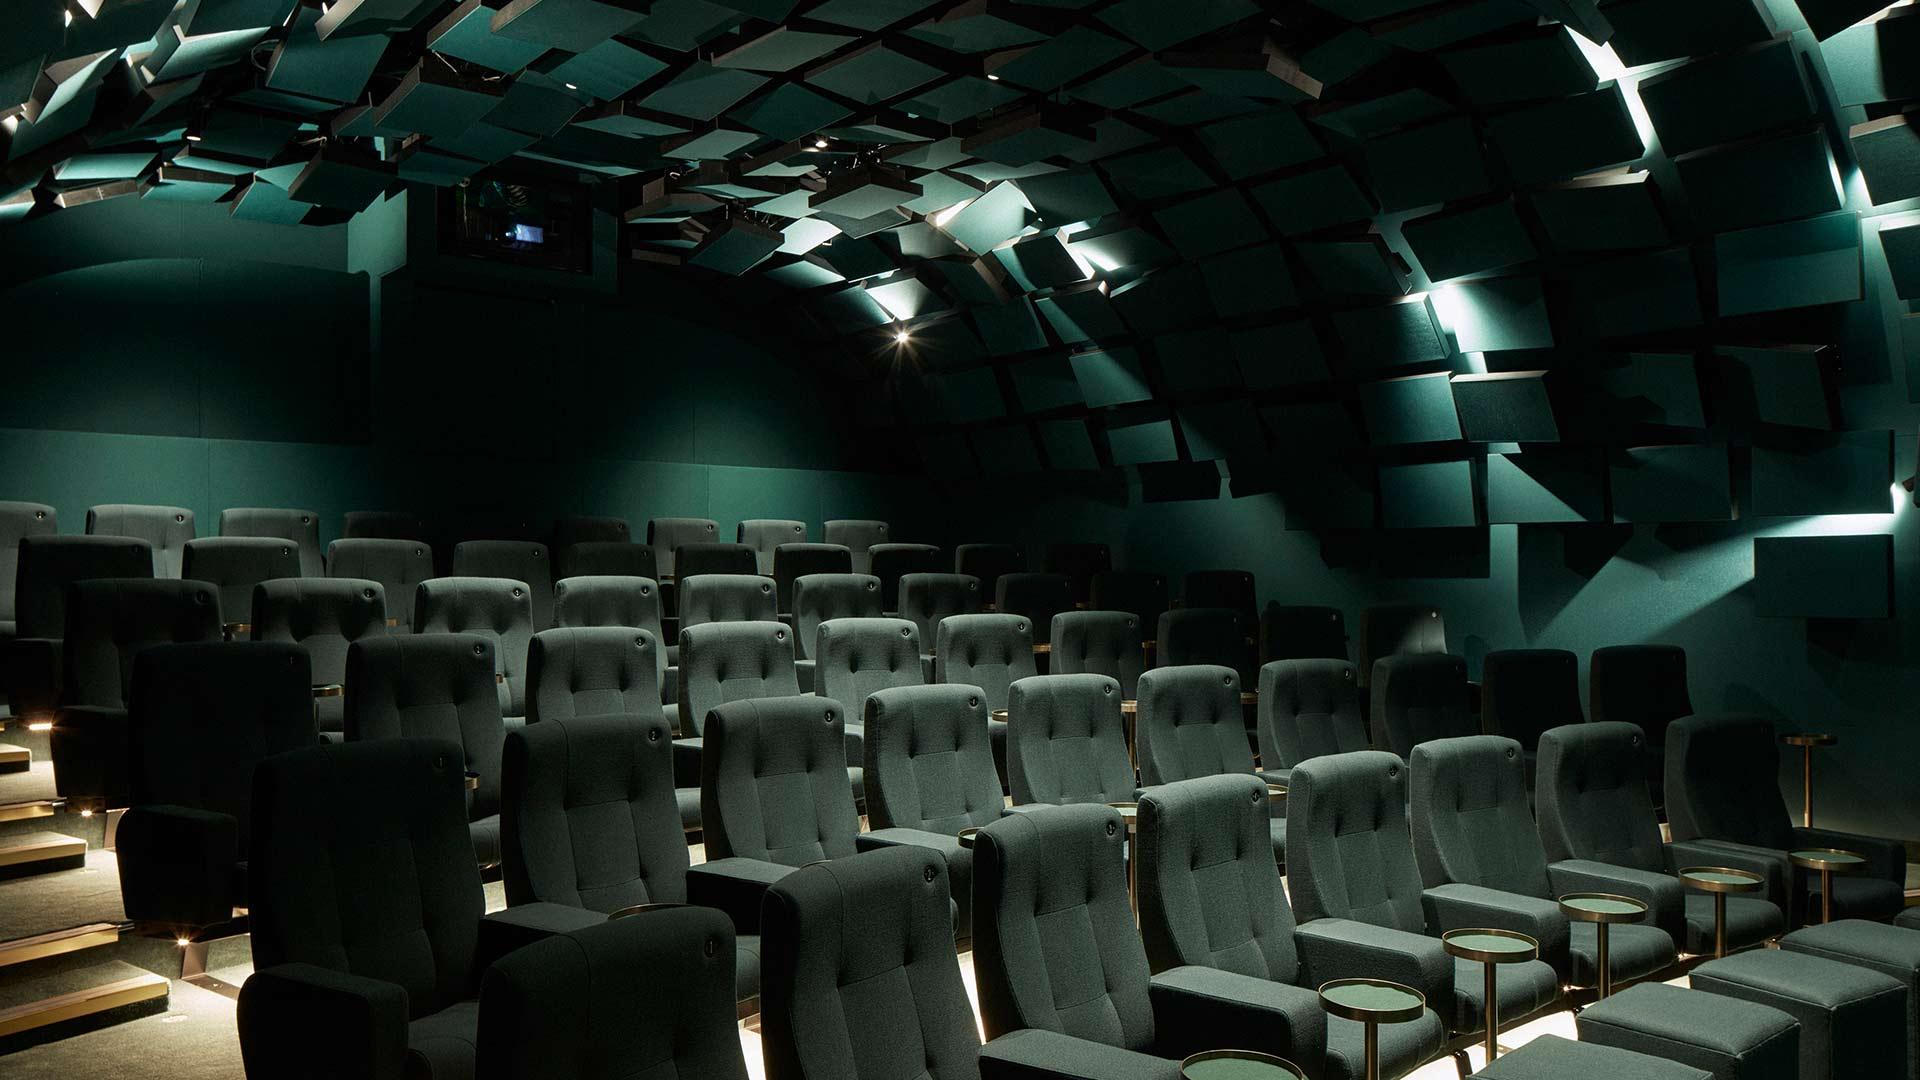 Architectural Lighting Design Dramatic Angled Acoustic Panels Arched Feature Ceiling Stylish Boutique Cinema London Nulty